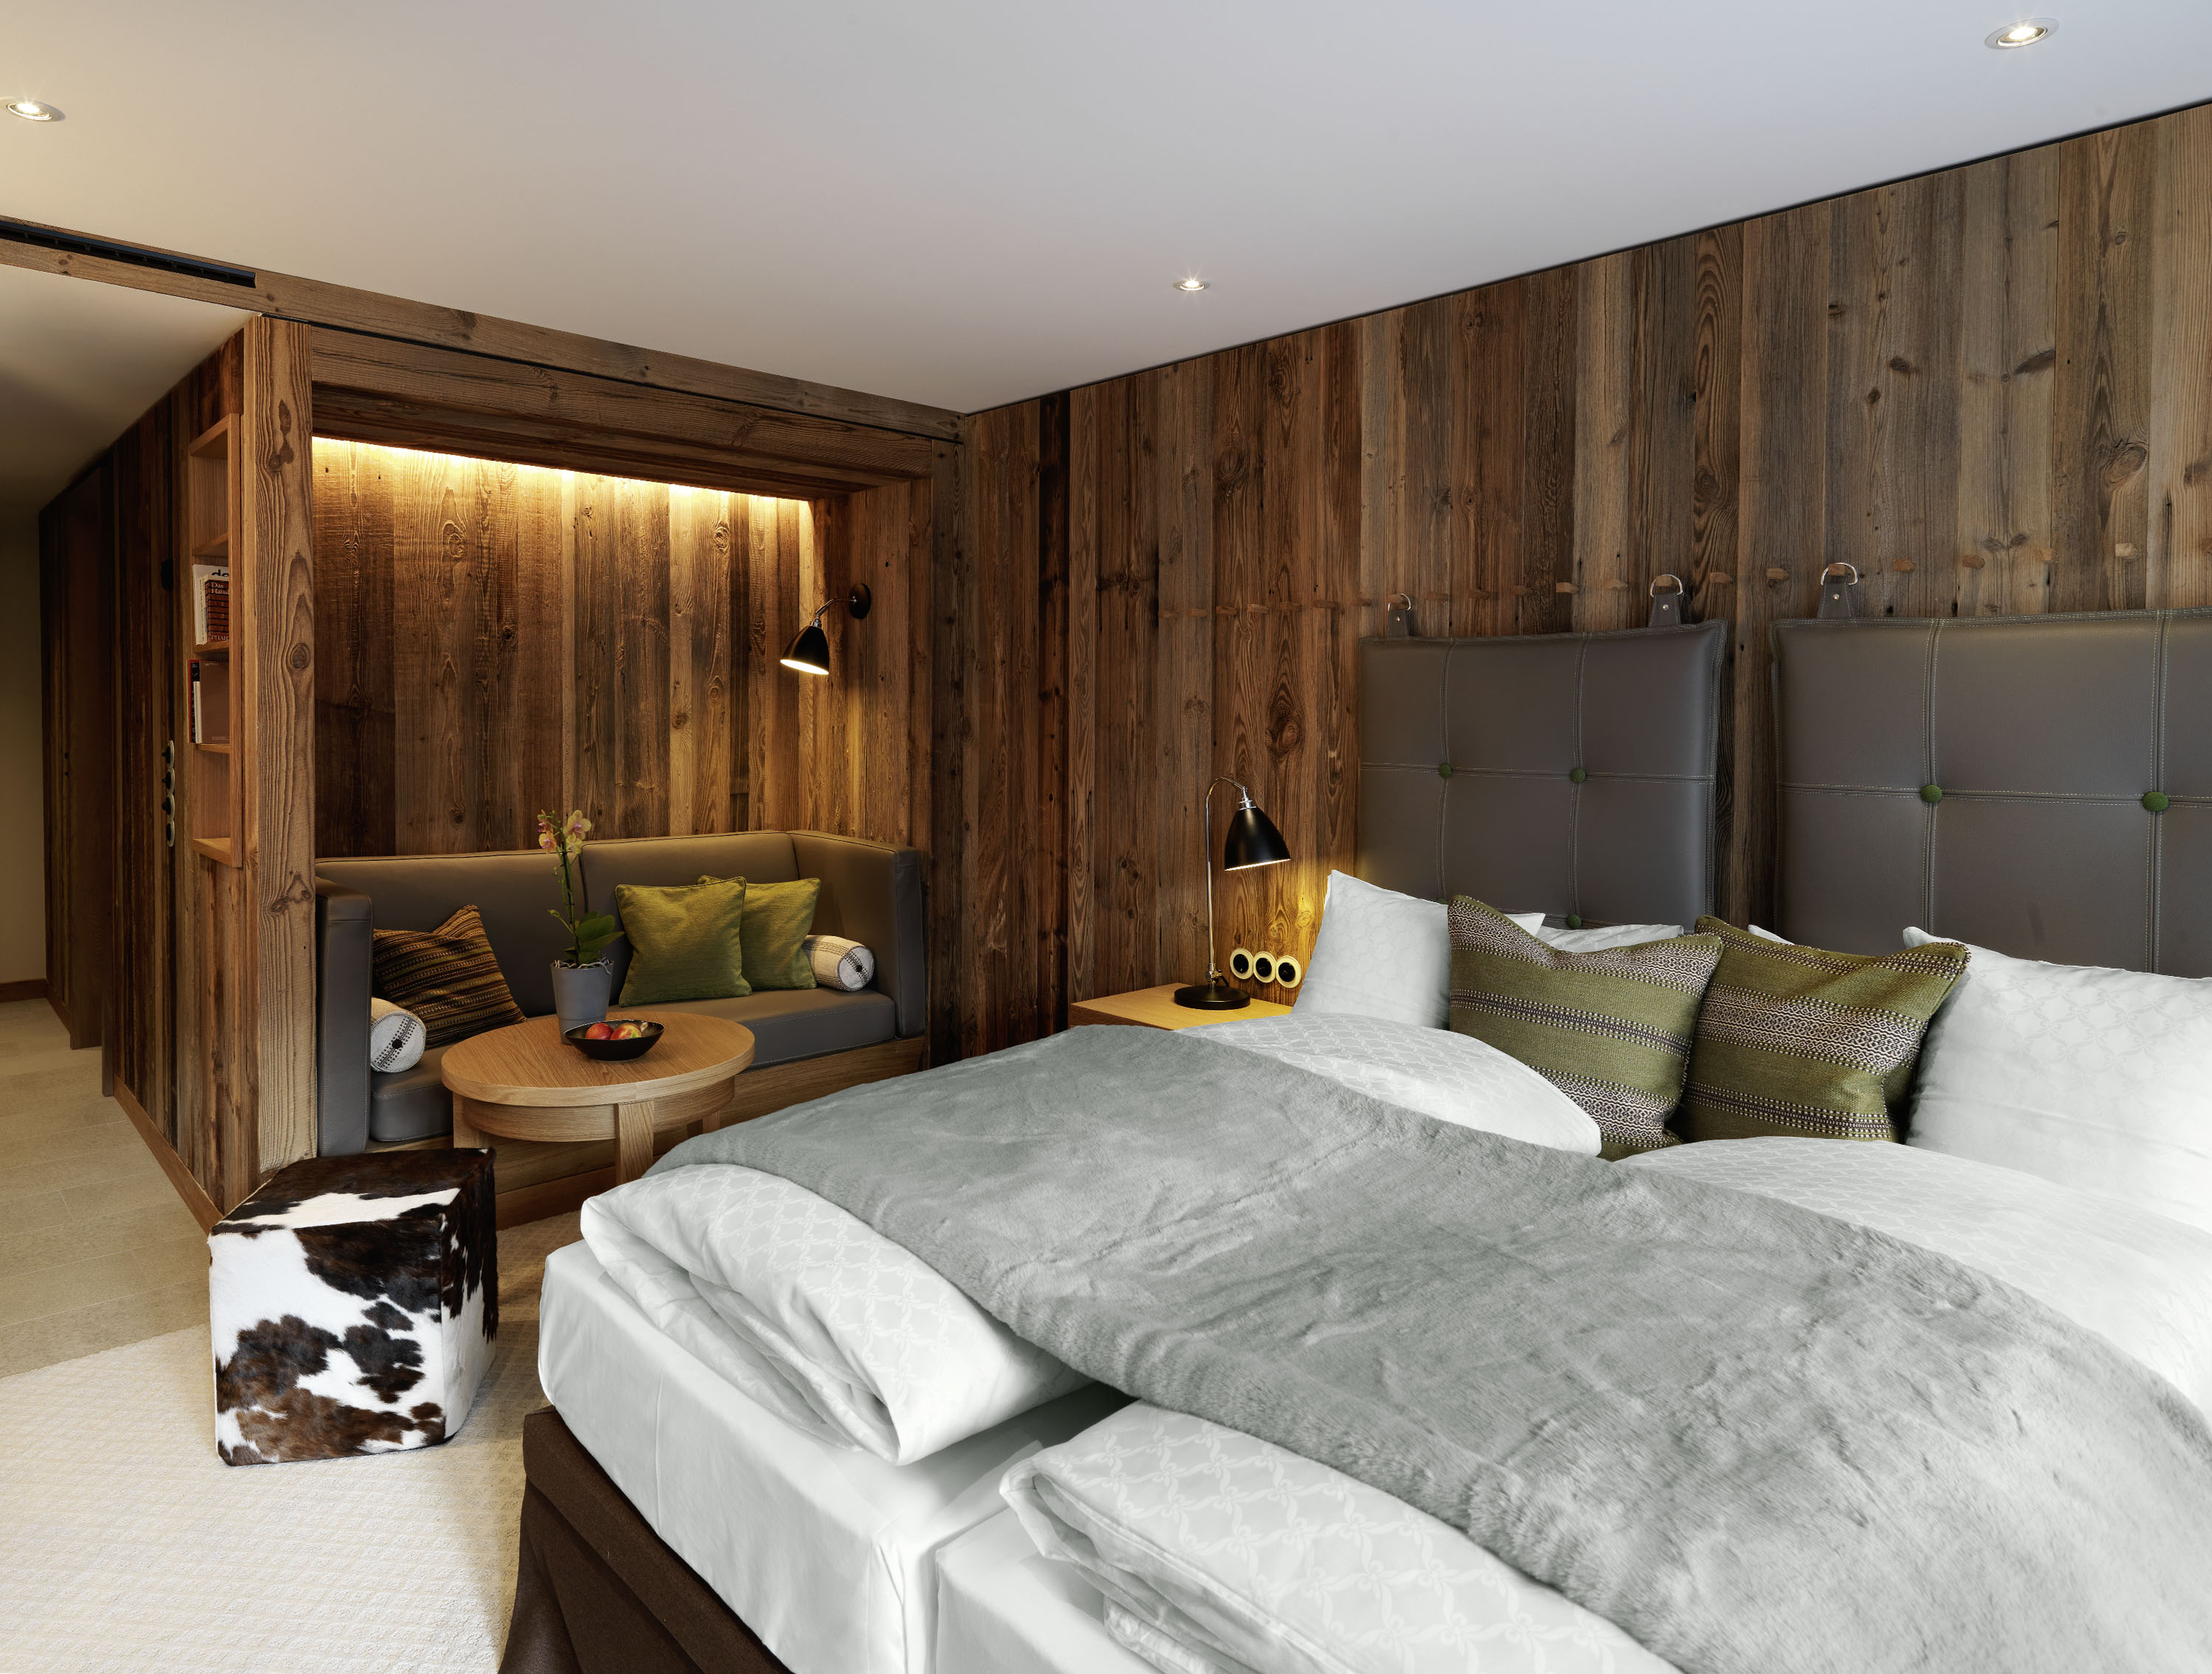 l wen hotel montafon golfferien im vorarlberger montafon. Black Bedroom Furniture Sets. Home Design Ideas